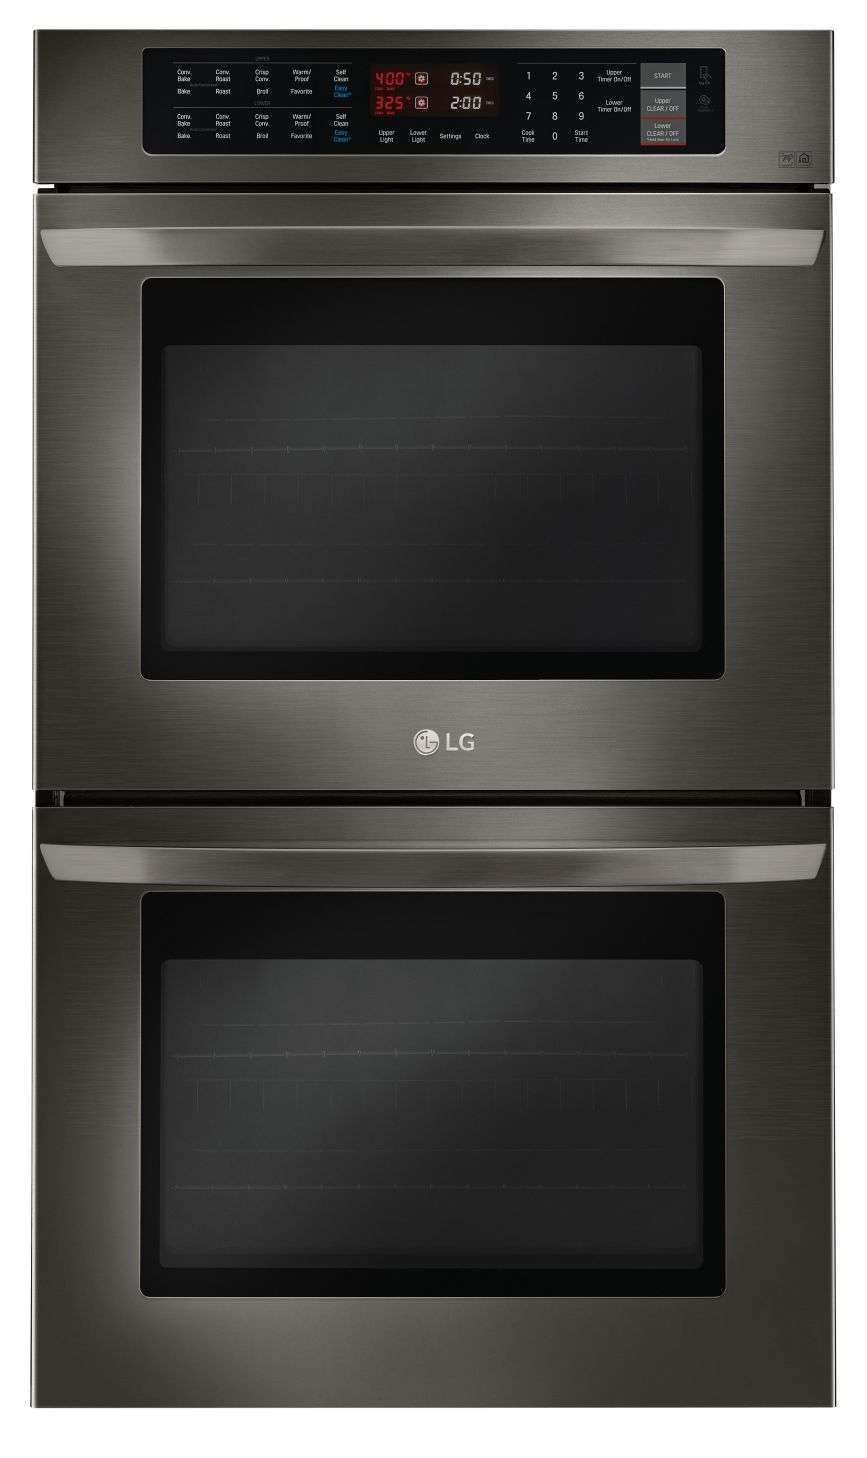 Lwd3063bd By Lg Electric Wall Ovens Goedekers Com Wall Oven Electric Wall Oven Double Electric Wall Oven